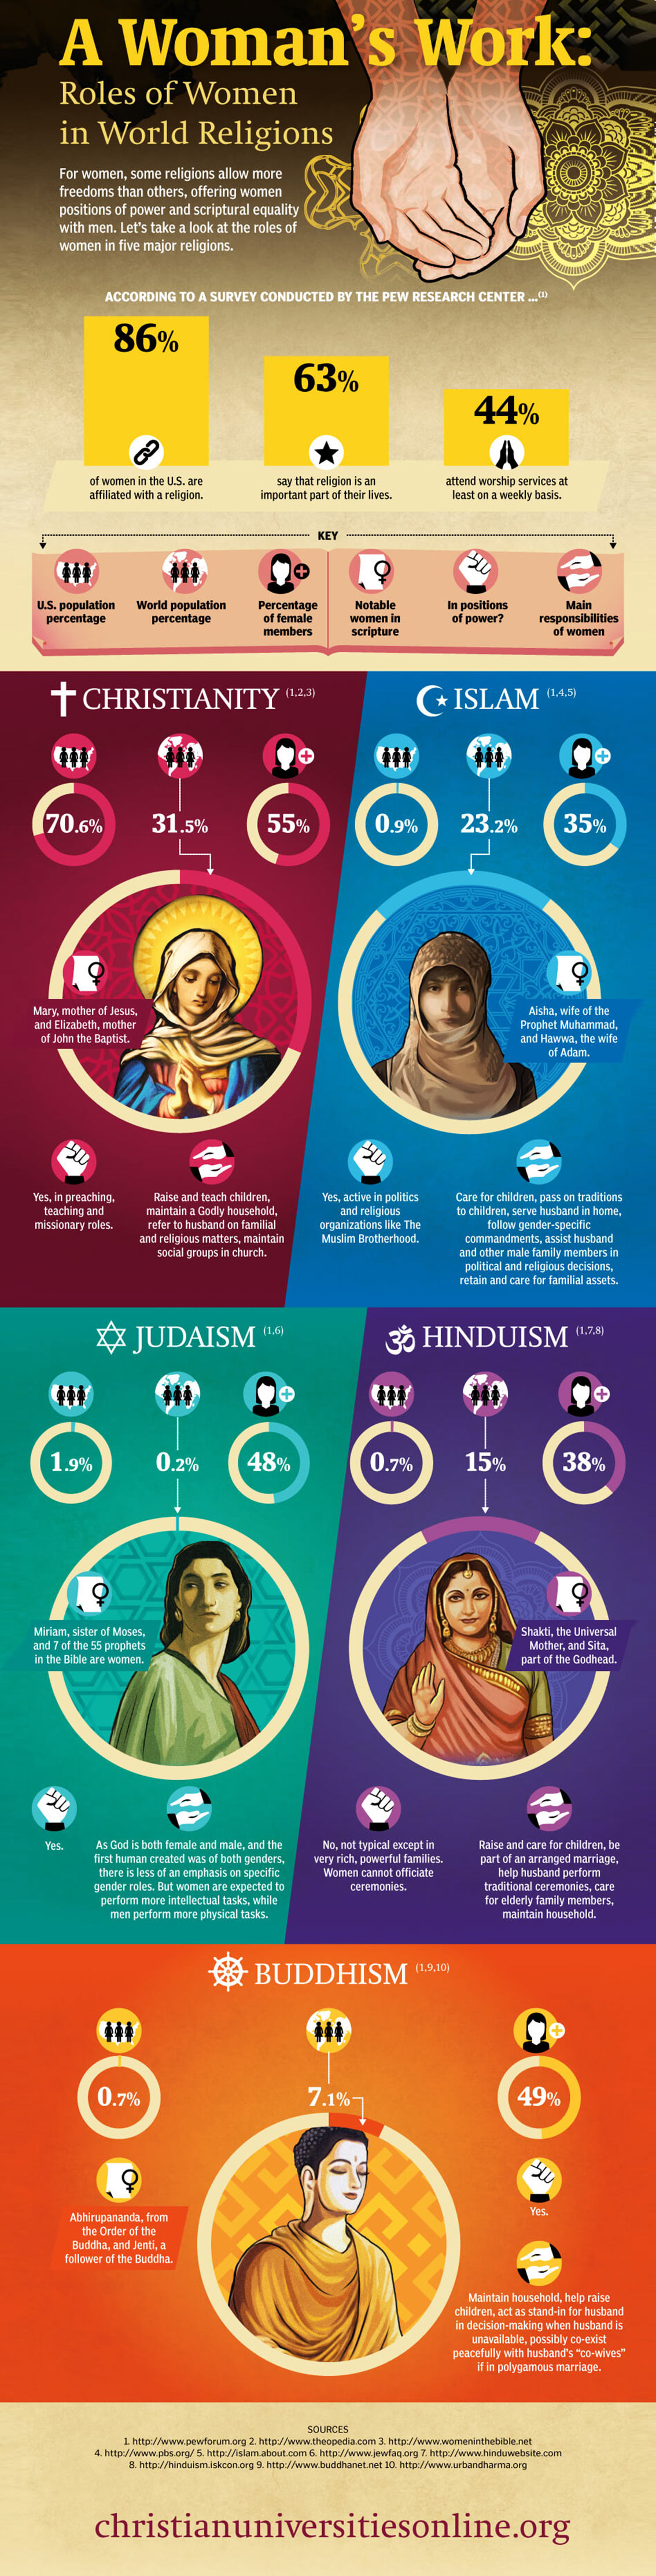 Roles of Women in World Religions Infographic